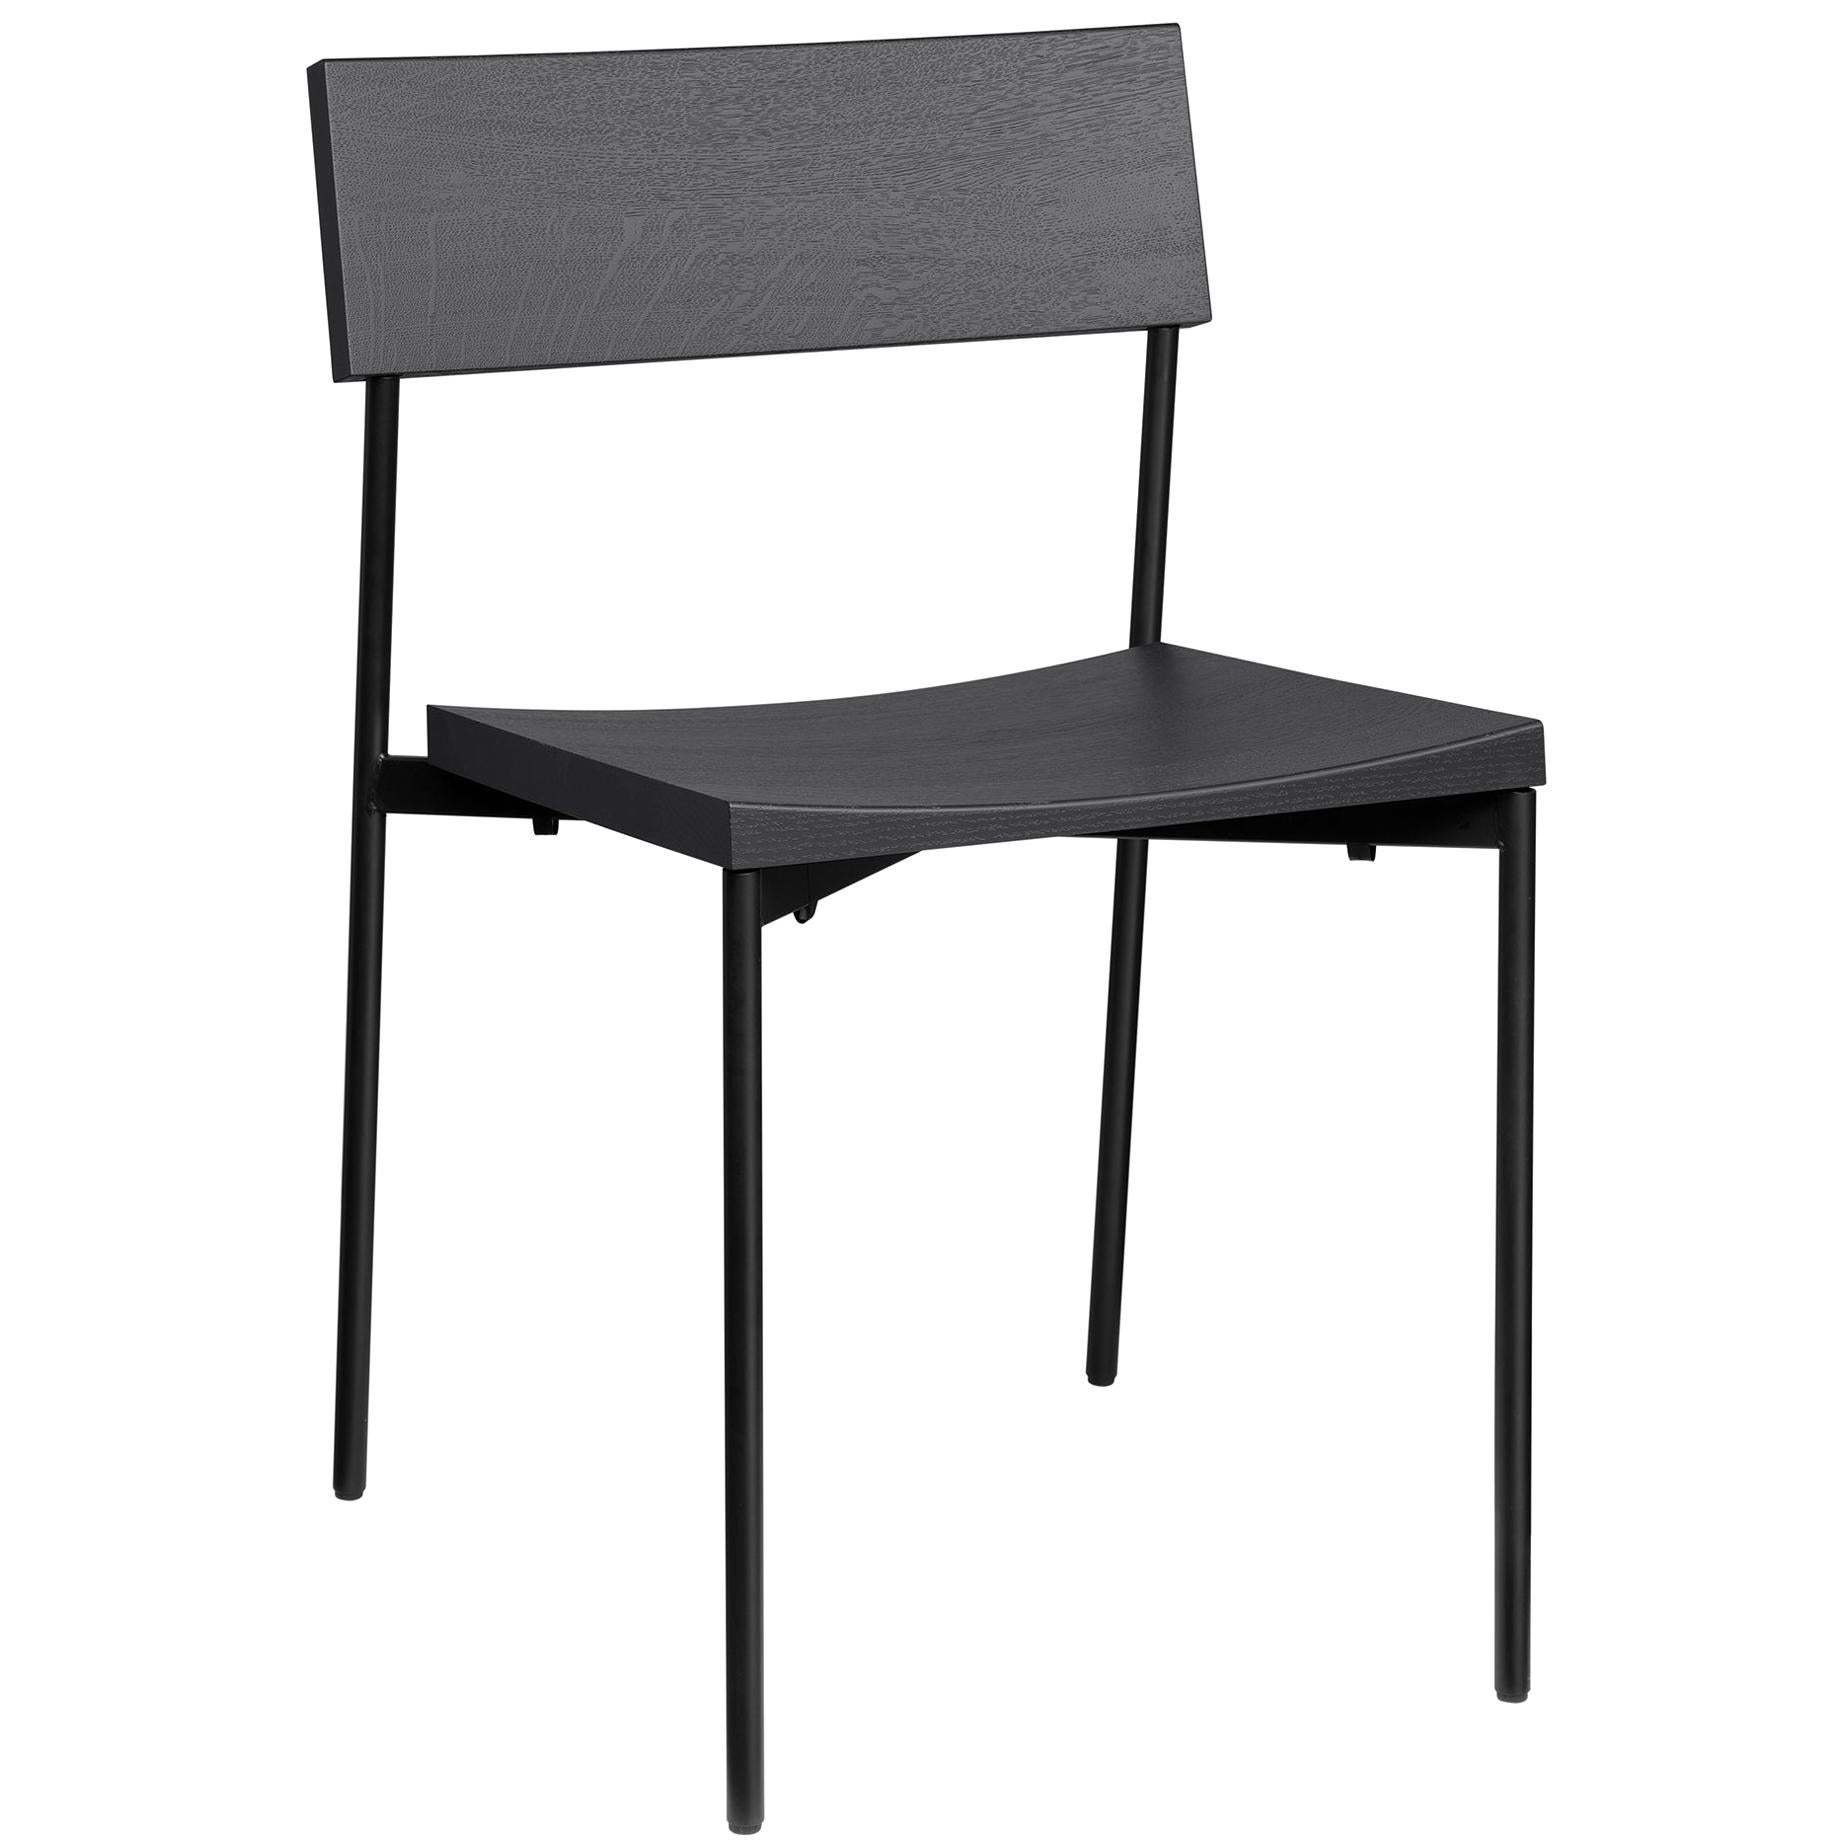 e15 Henning Chair with Jet-Black Frame by Philipp Mainzer